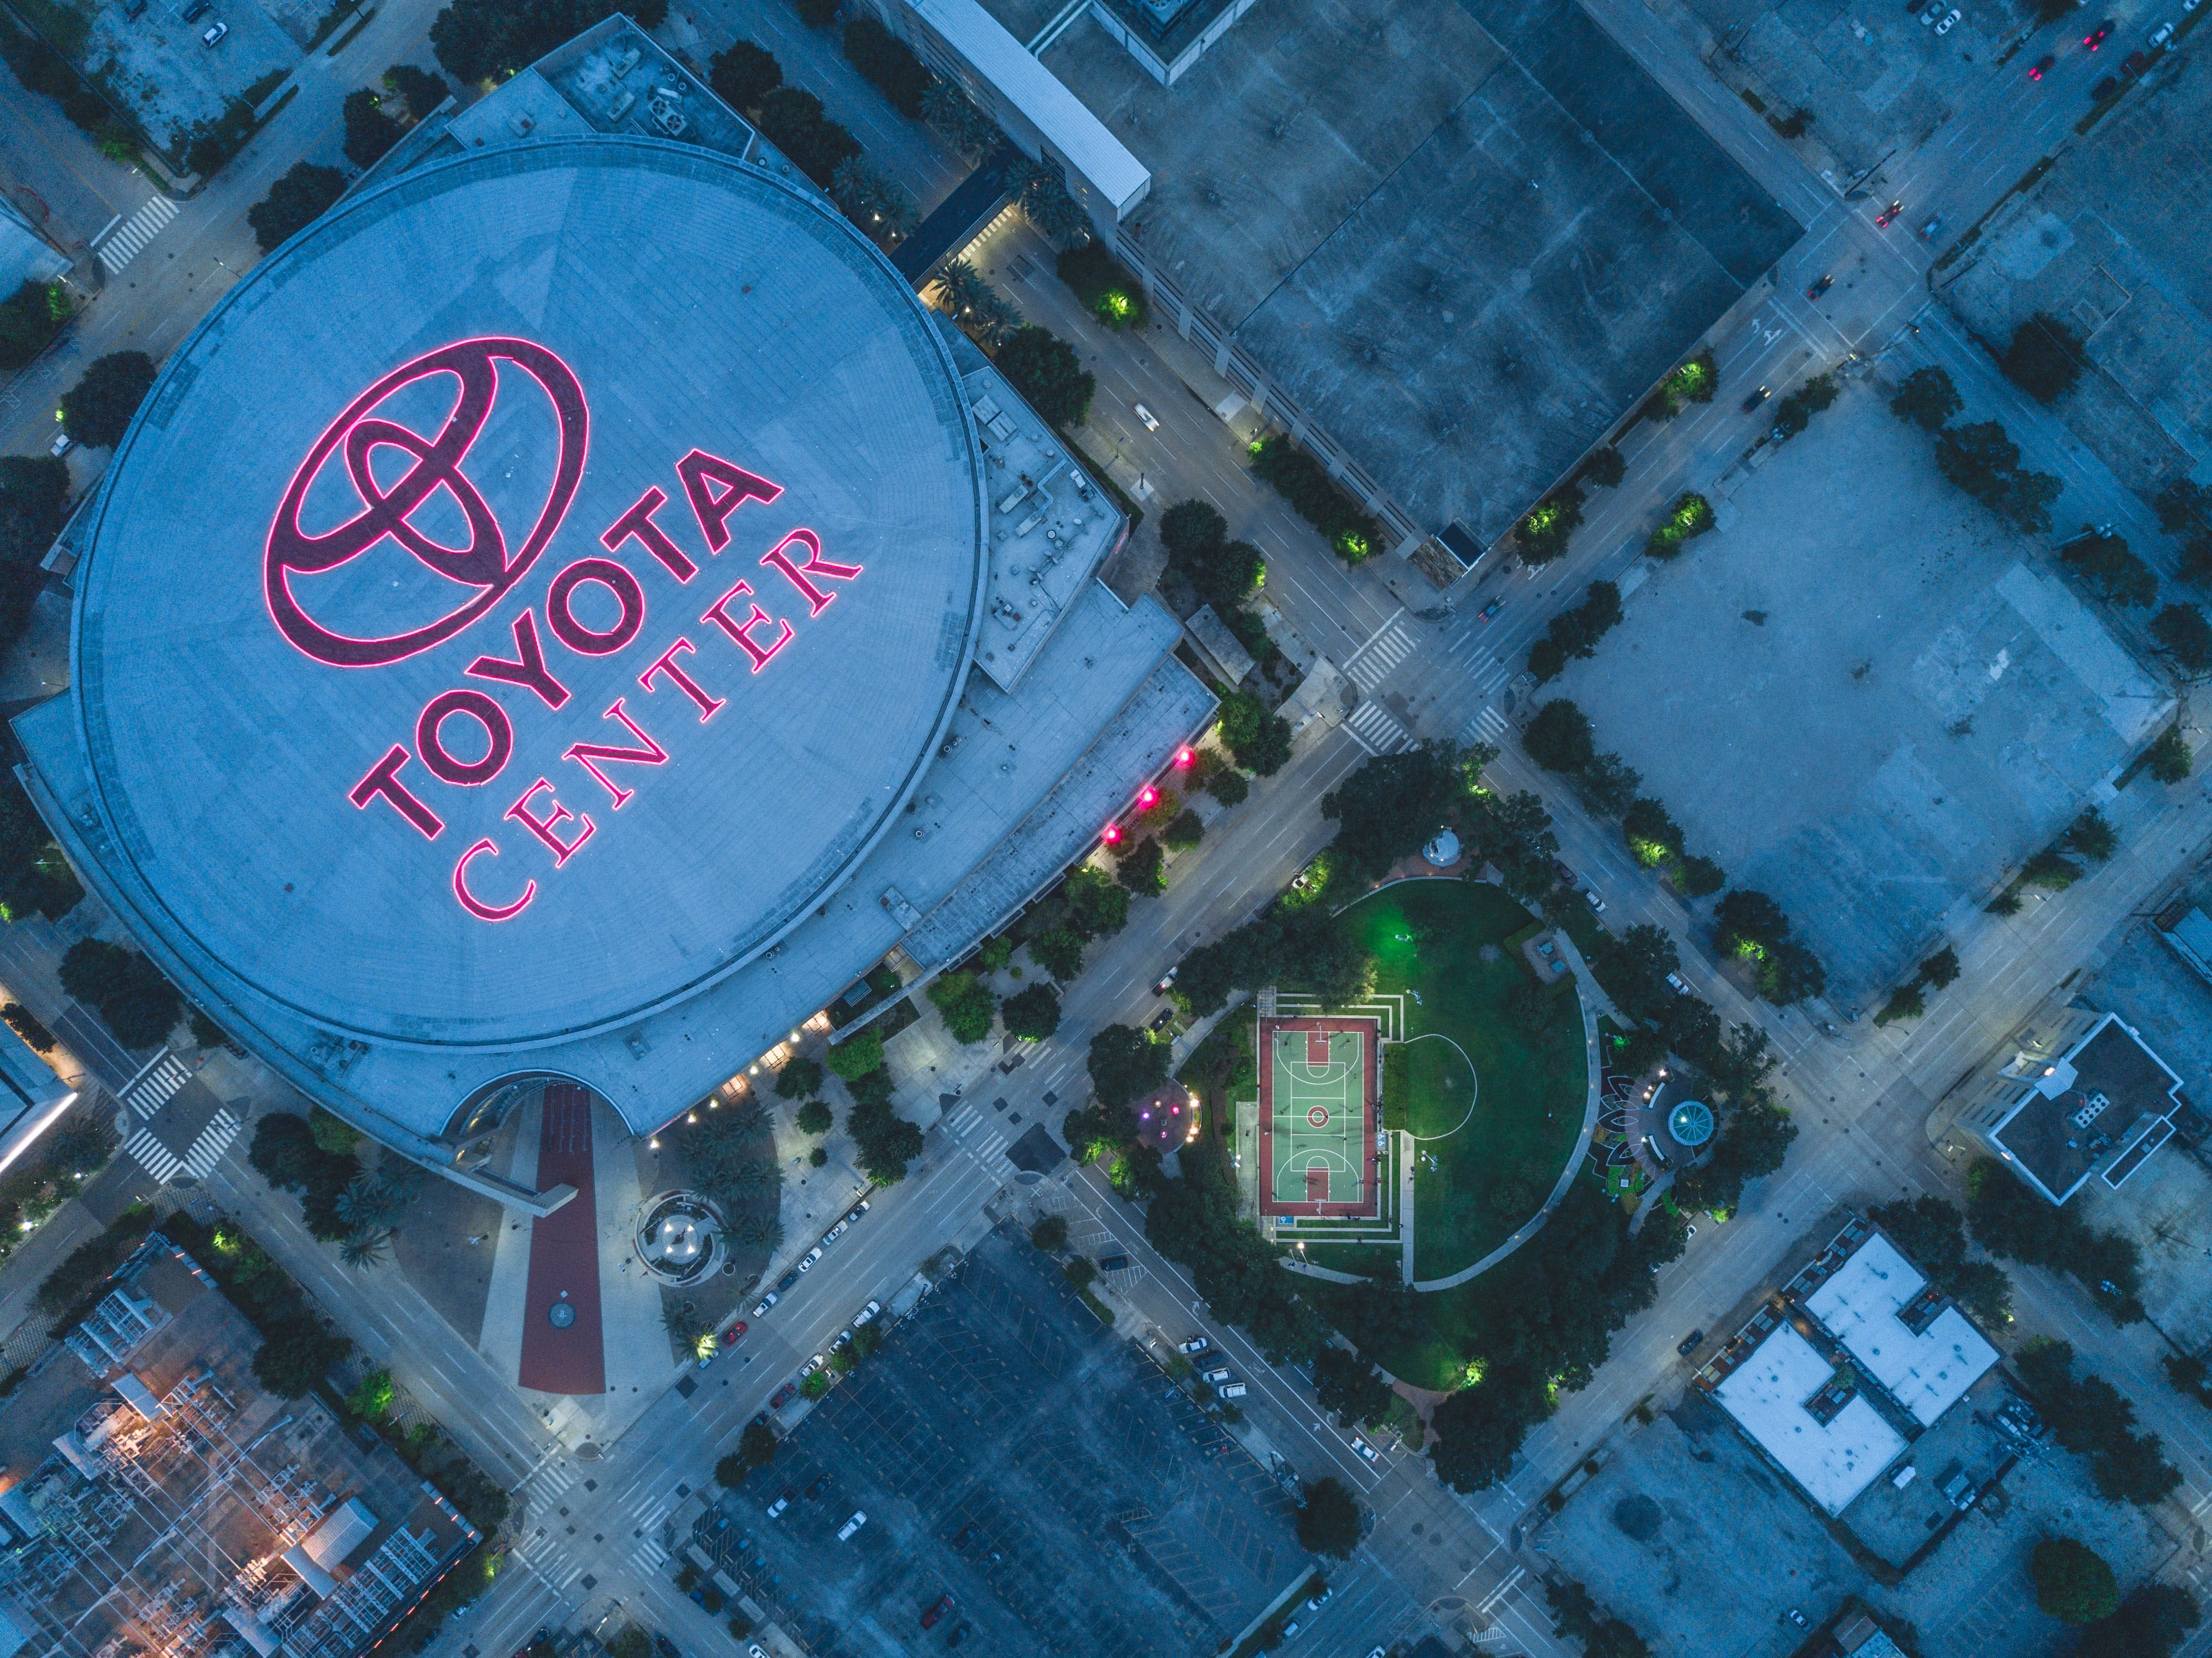 aerial view of Toyota Center arena